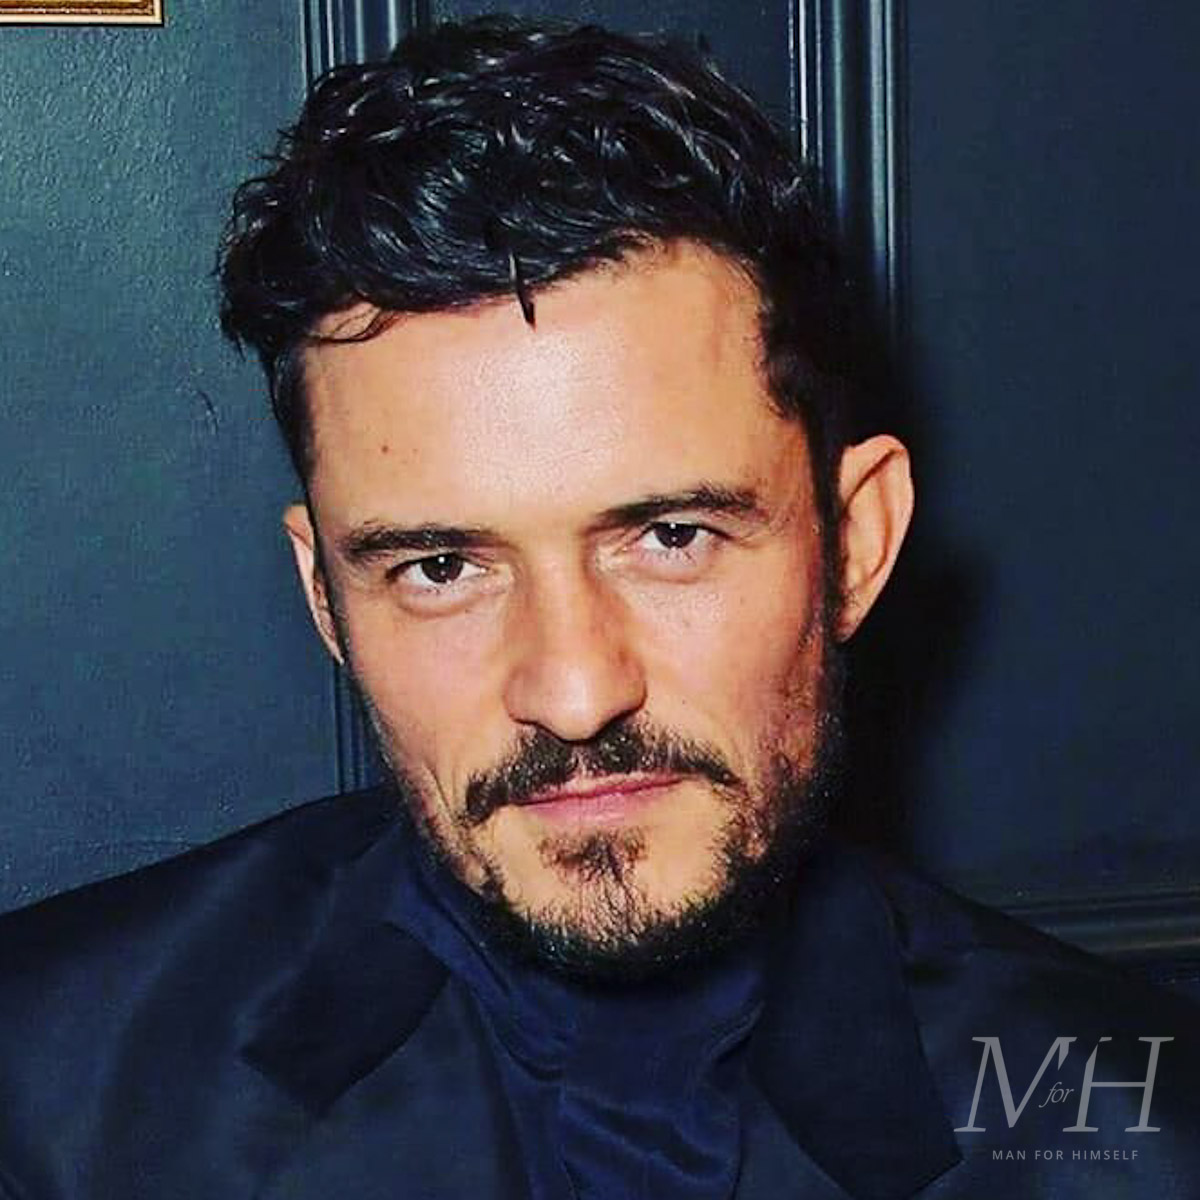 orlando-bloom-medium-length-hair-hairstyle-MFHC16-man-for-himself-1